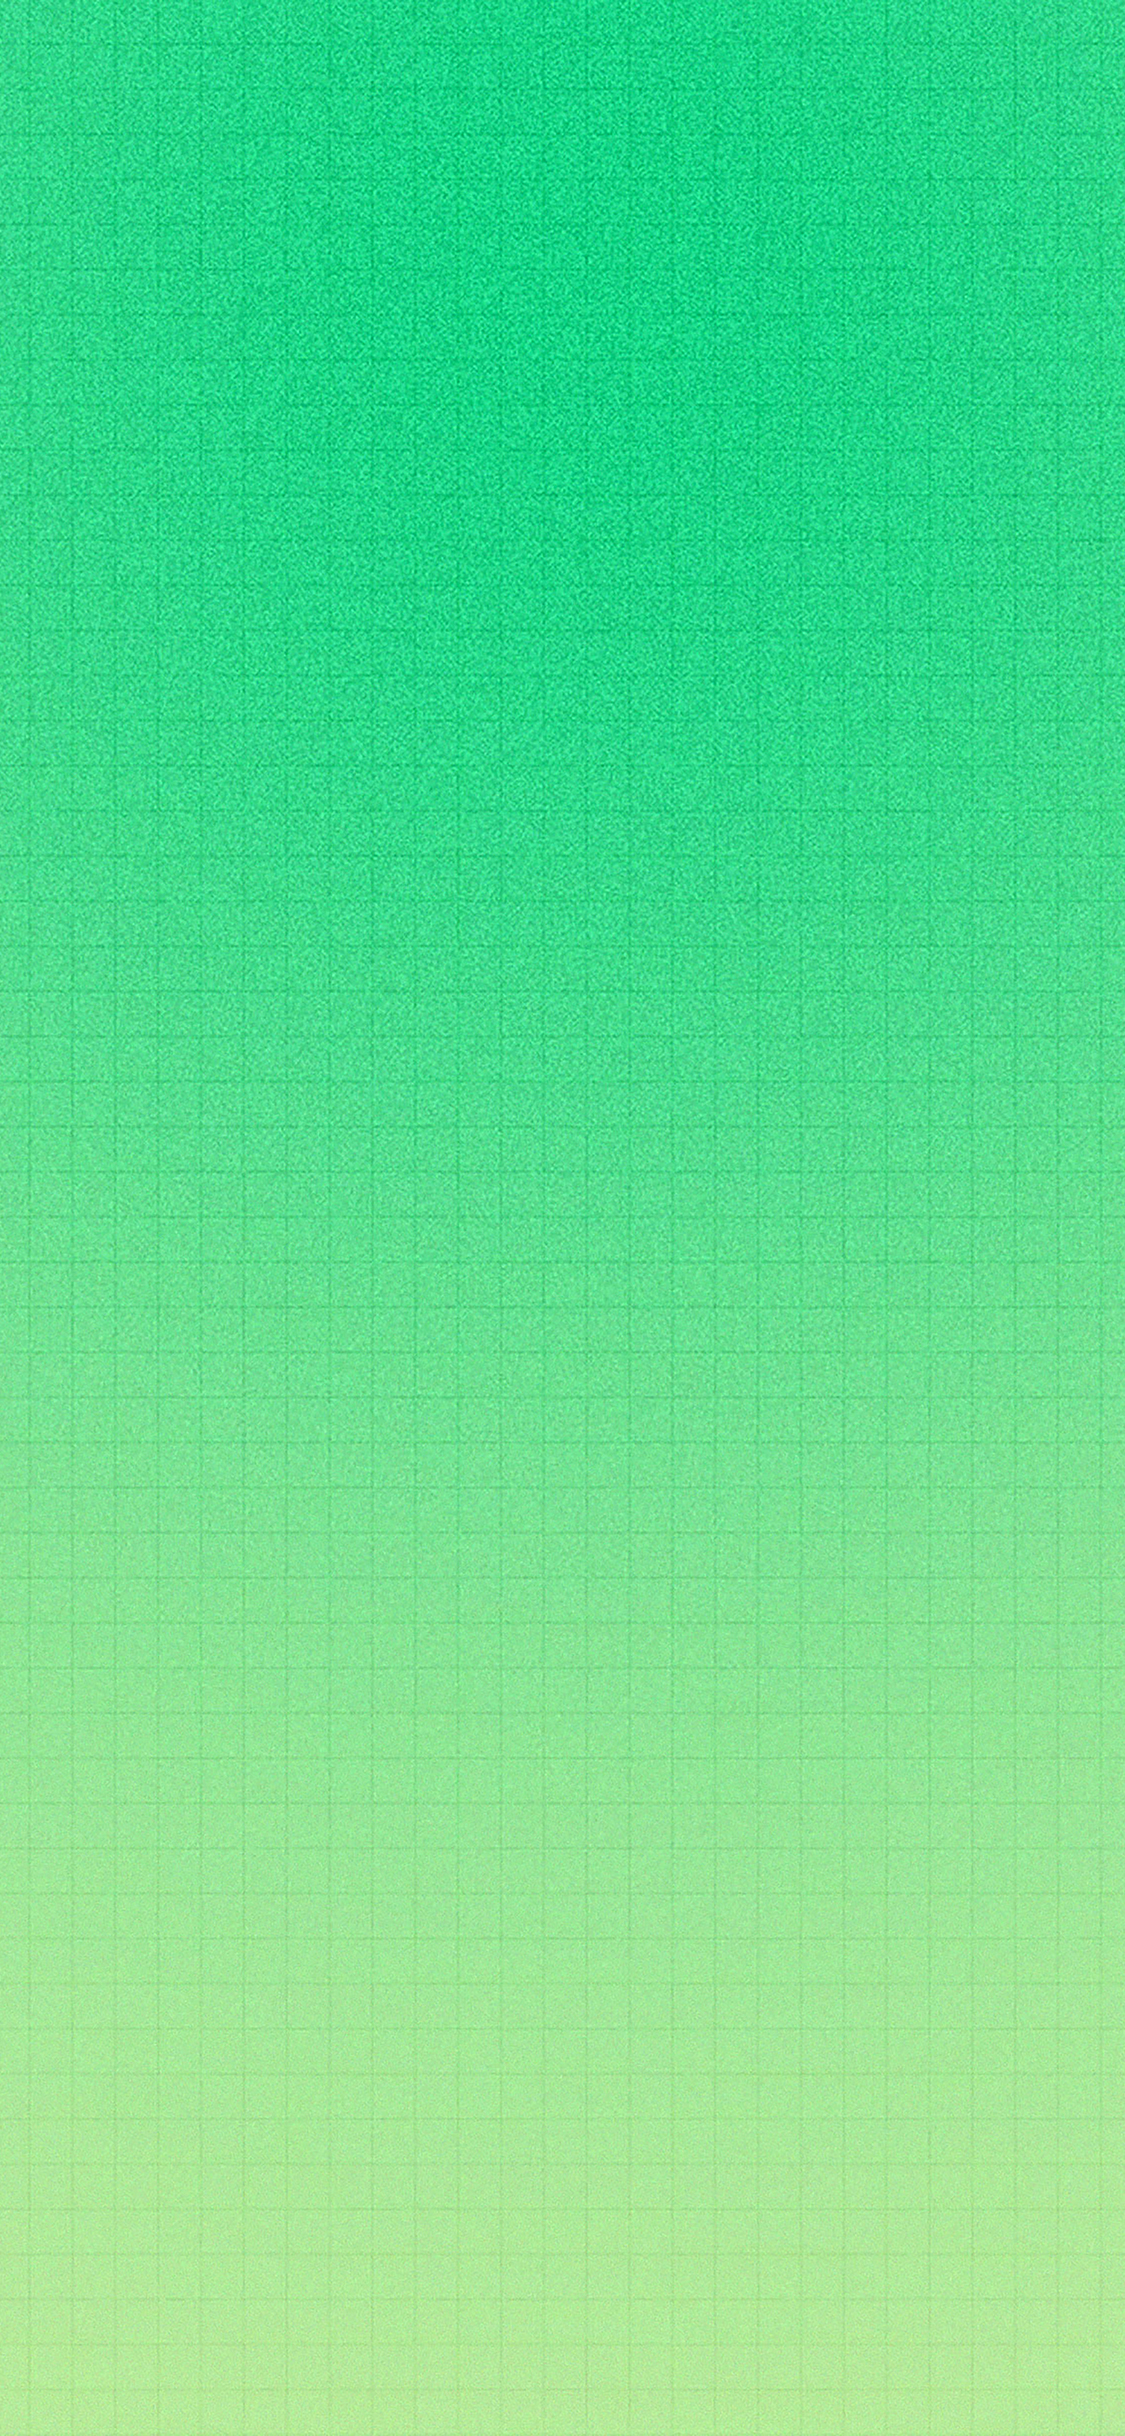 iPhoneXpapers.com-Apple-iPhone-wallpaper-vc72-grid-blur-pattern-green